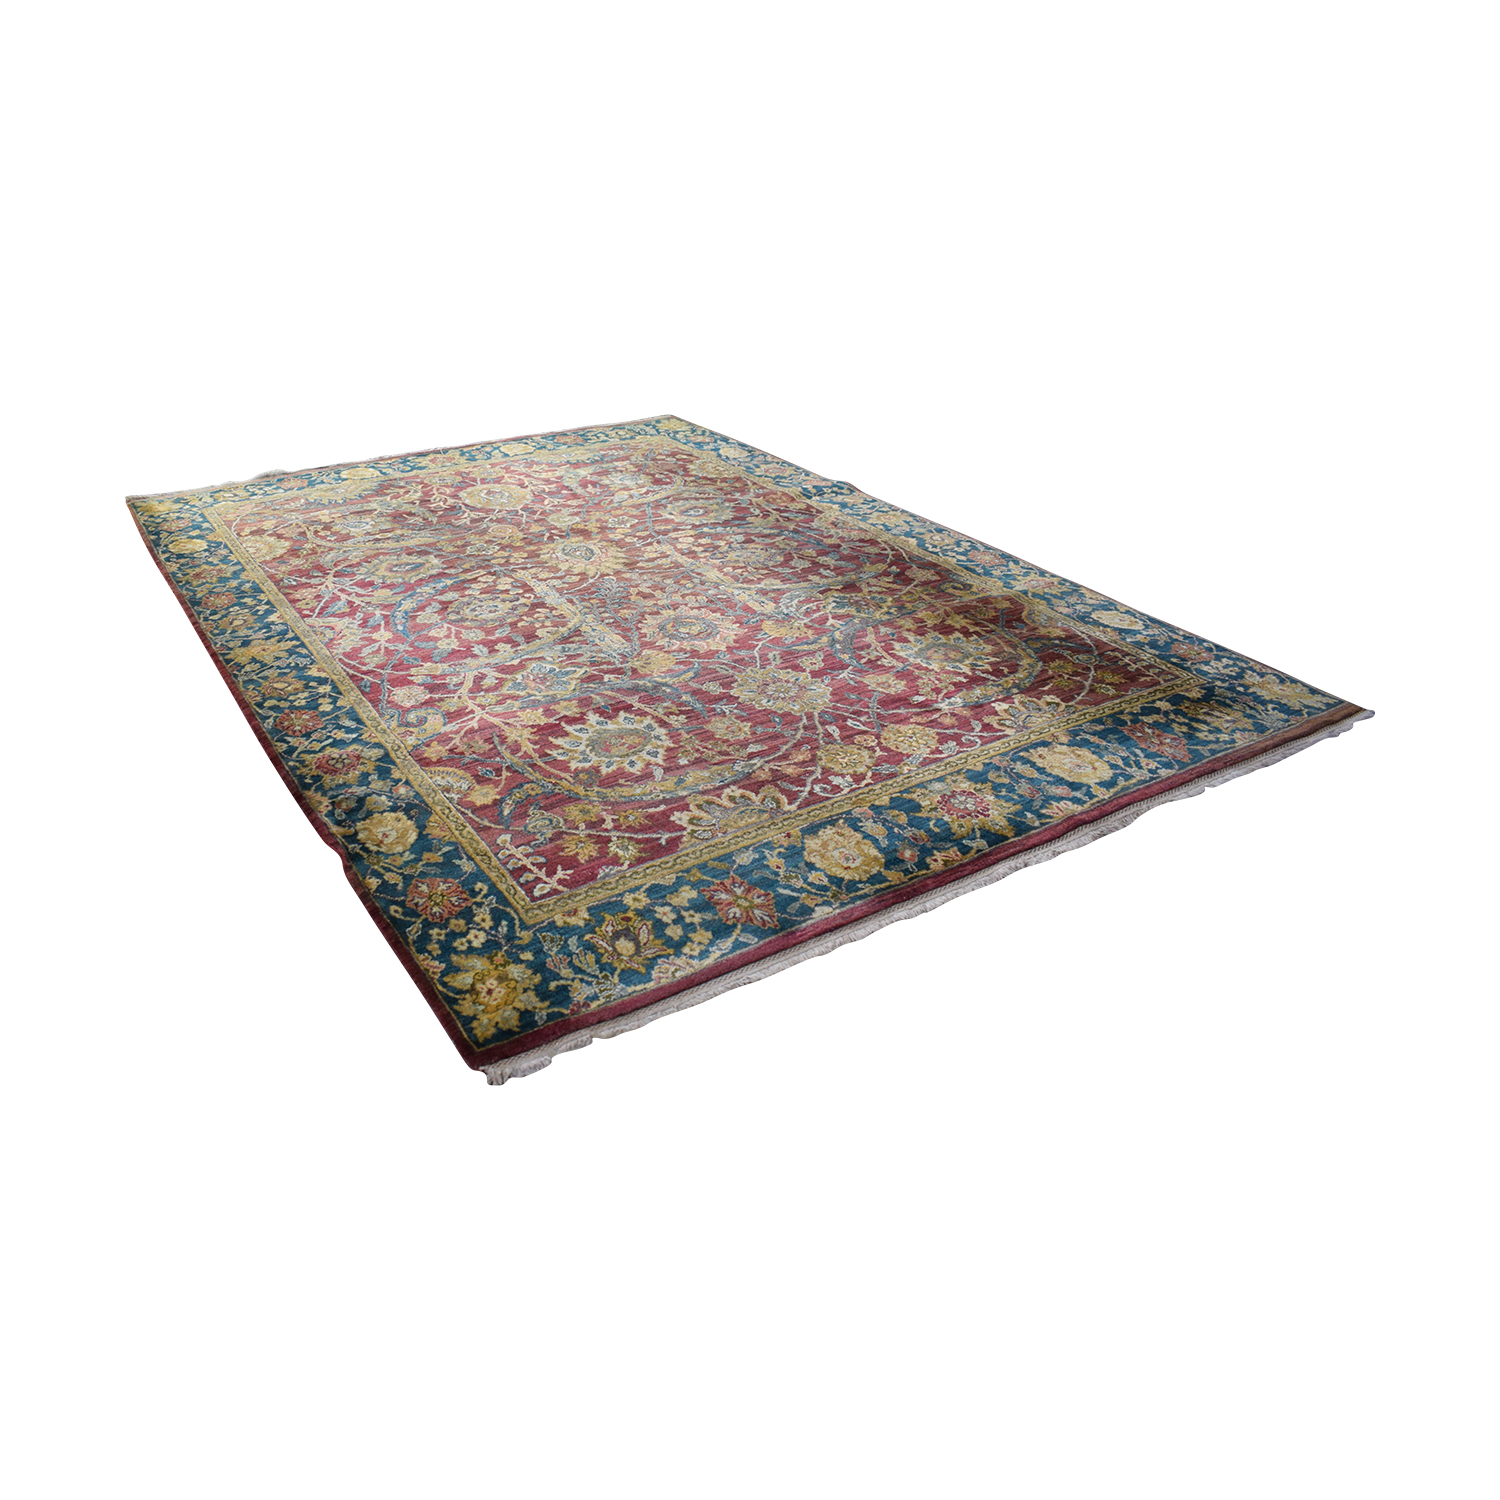 buy ABC Carpet & Home ABC Carpet & Home Rug online